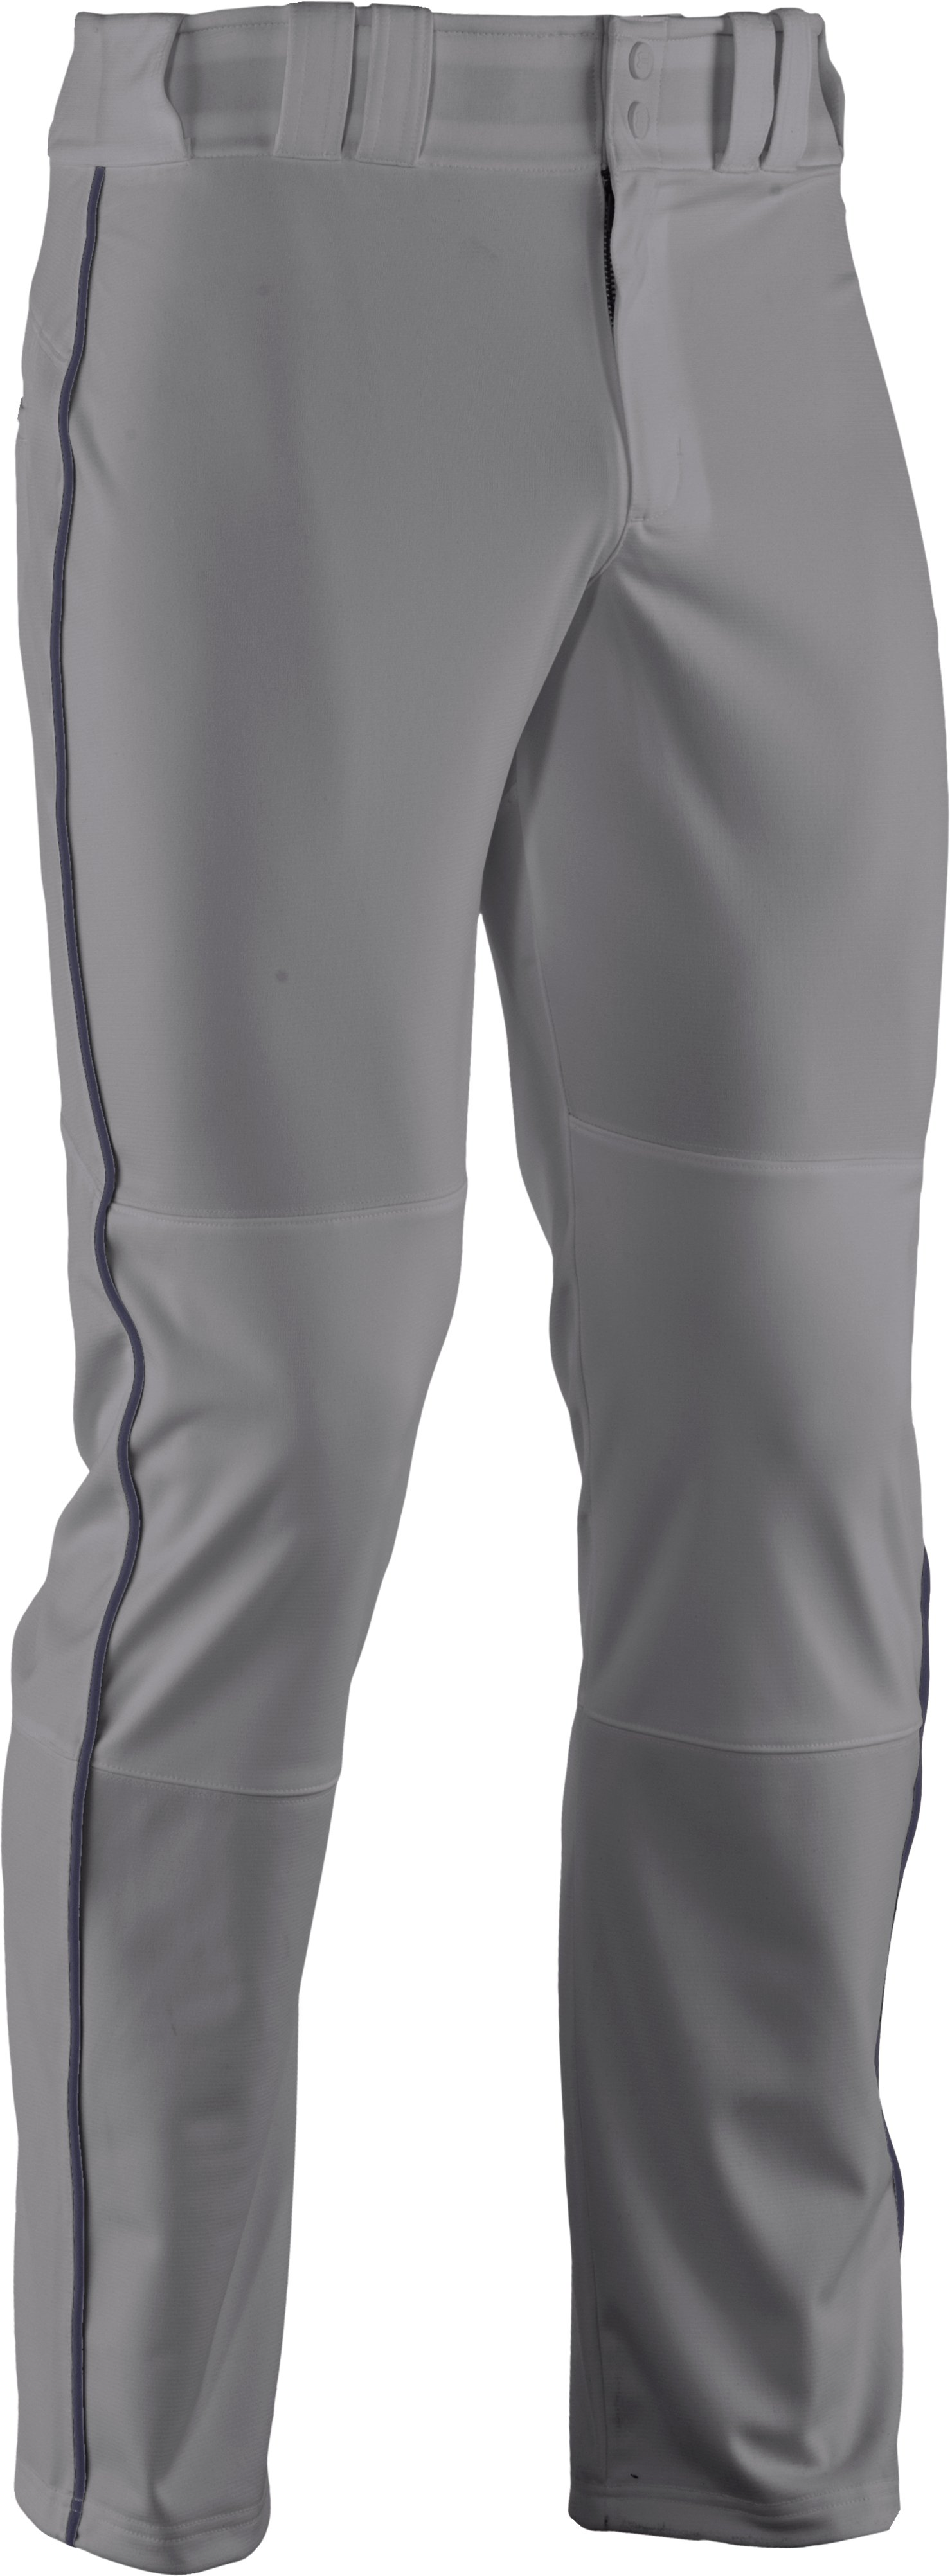 Men's UA Leadoff Piped Baseball Pants, Baseball Gray, undefined